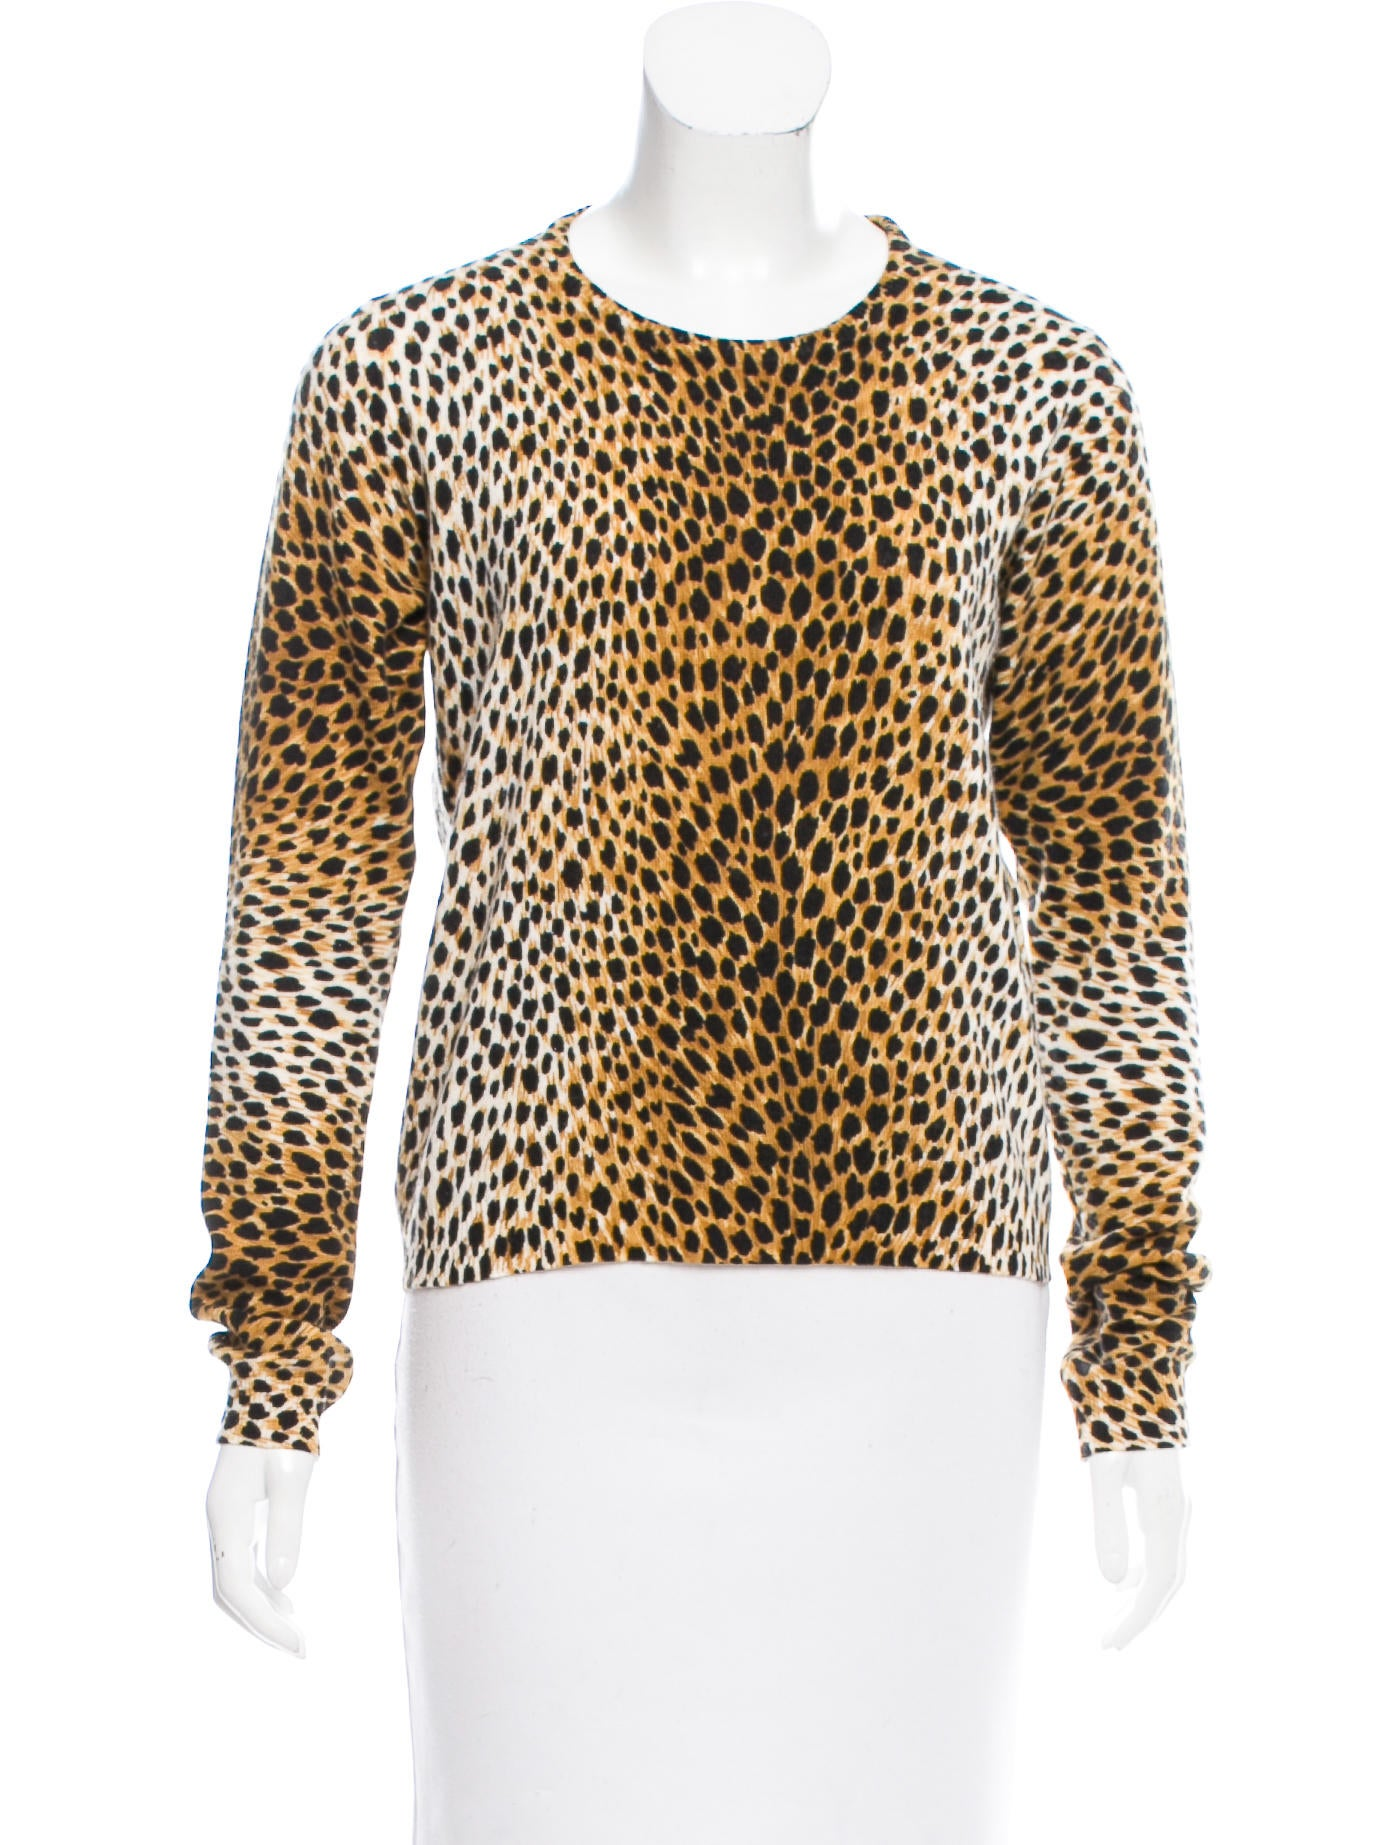 Find cheetah sweater at ShopStyle. Shop the latest collection of cheetah sweater from the most popular stores - all in one place.